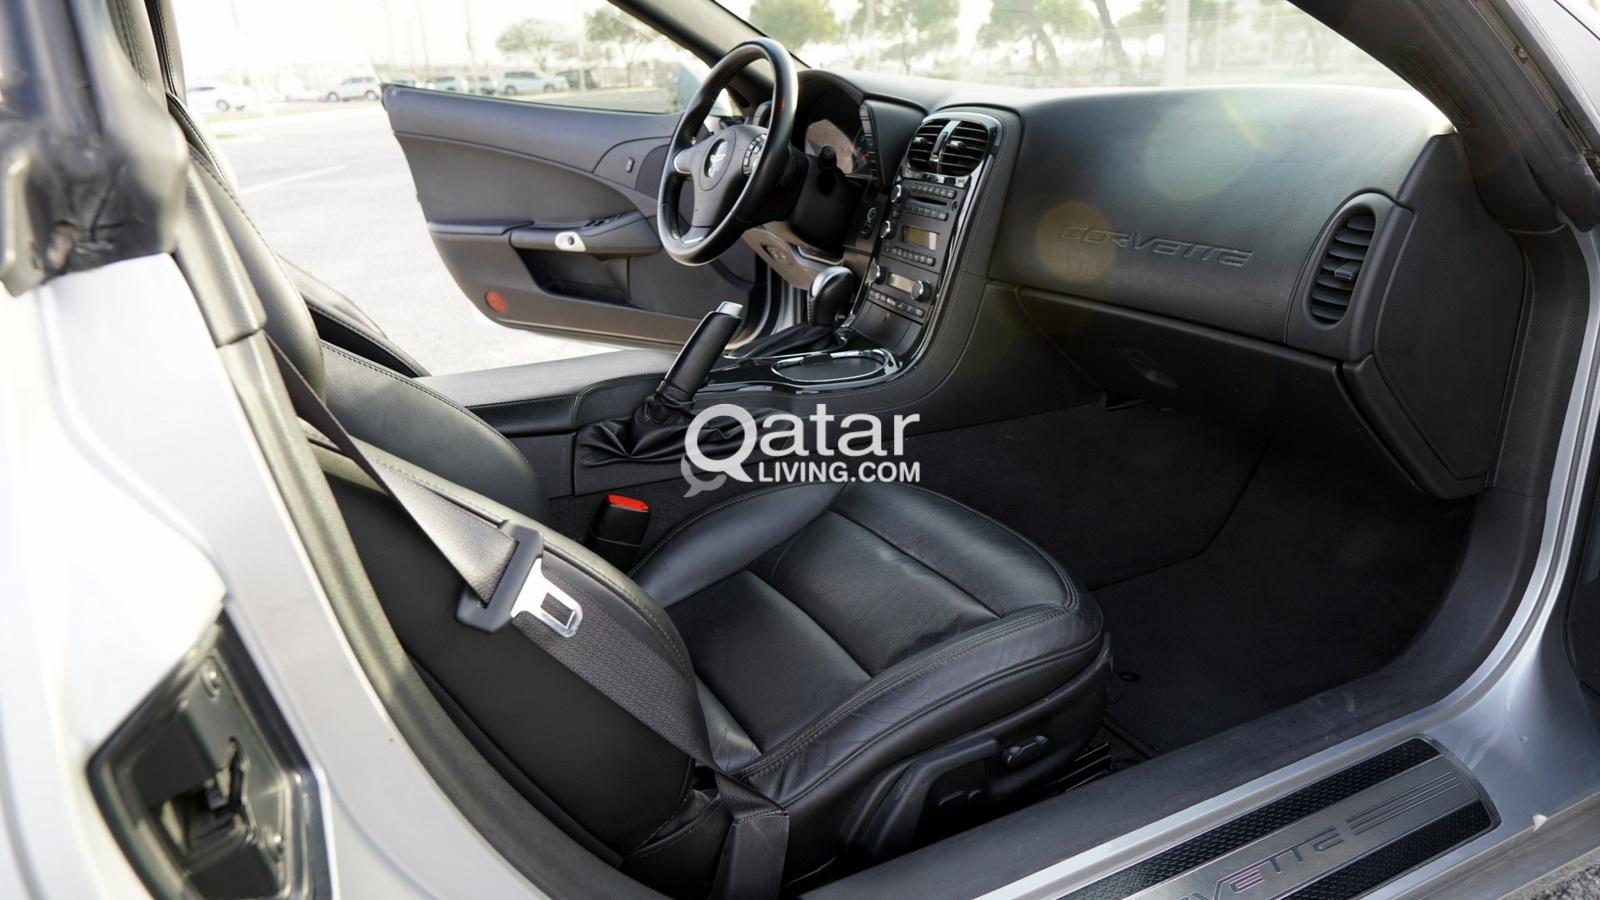 2012 Chevrolet Corvette Targa Top (Many More Photos Available Upon Viewing)